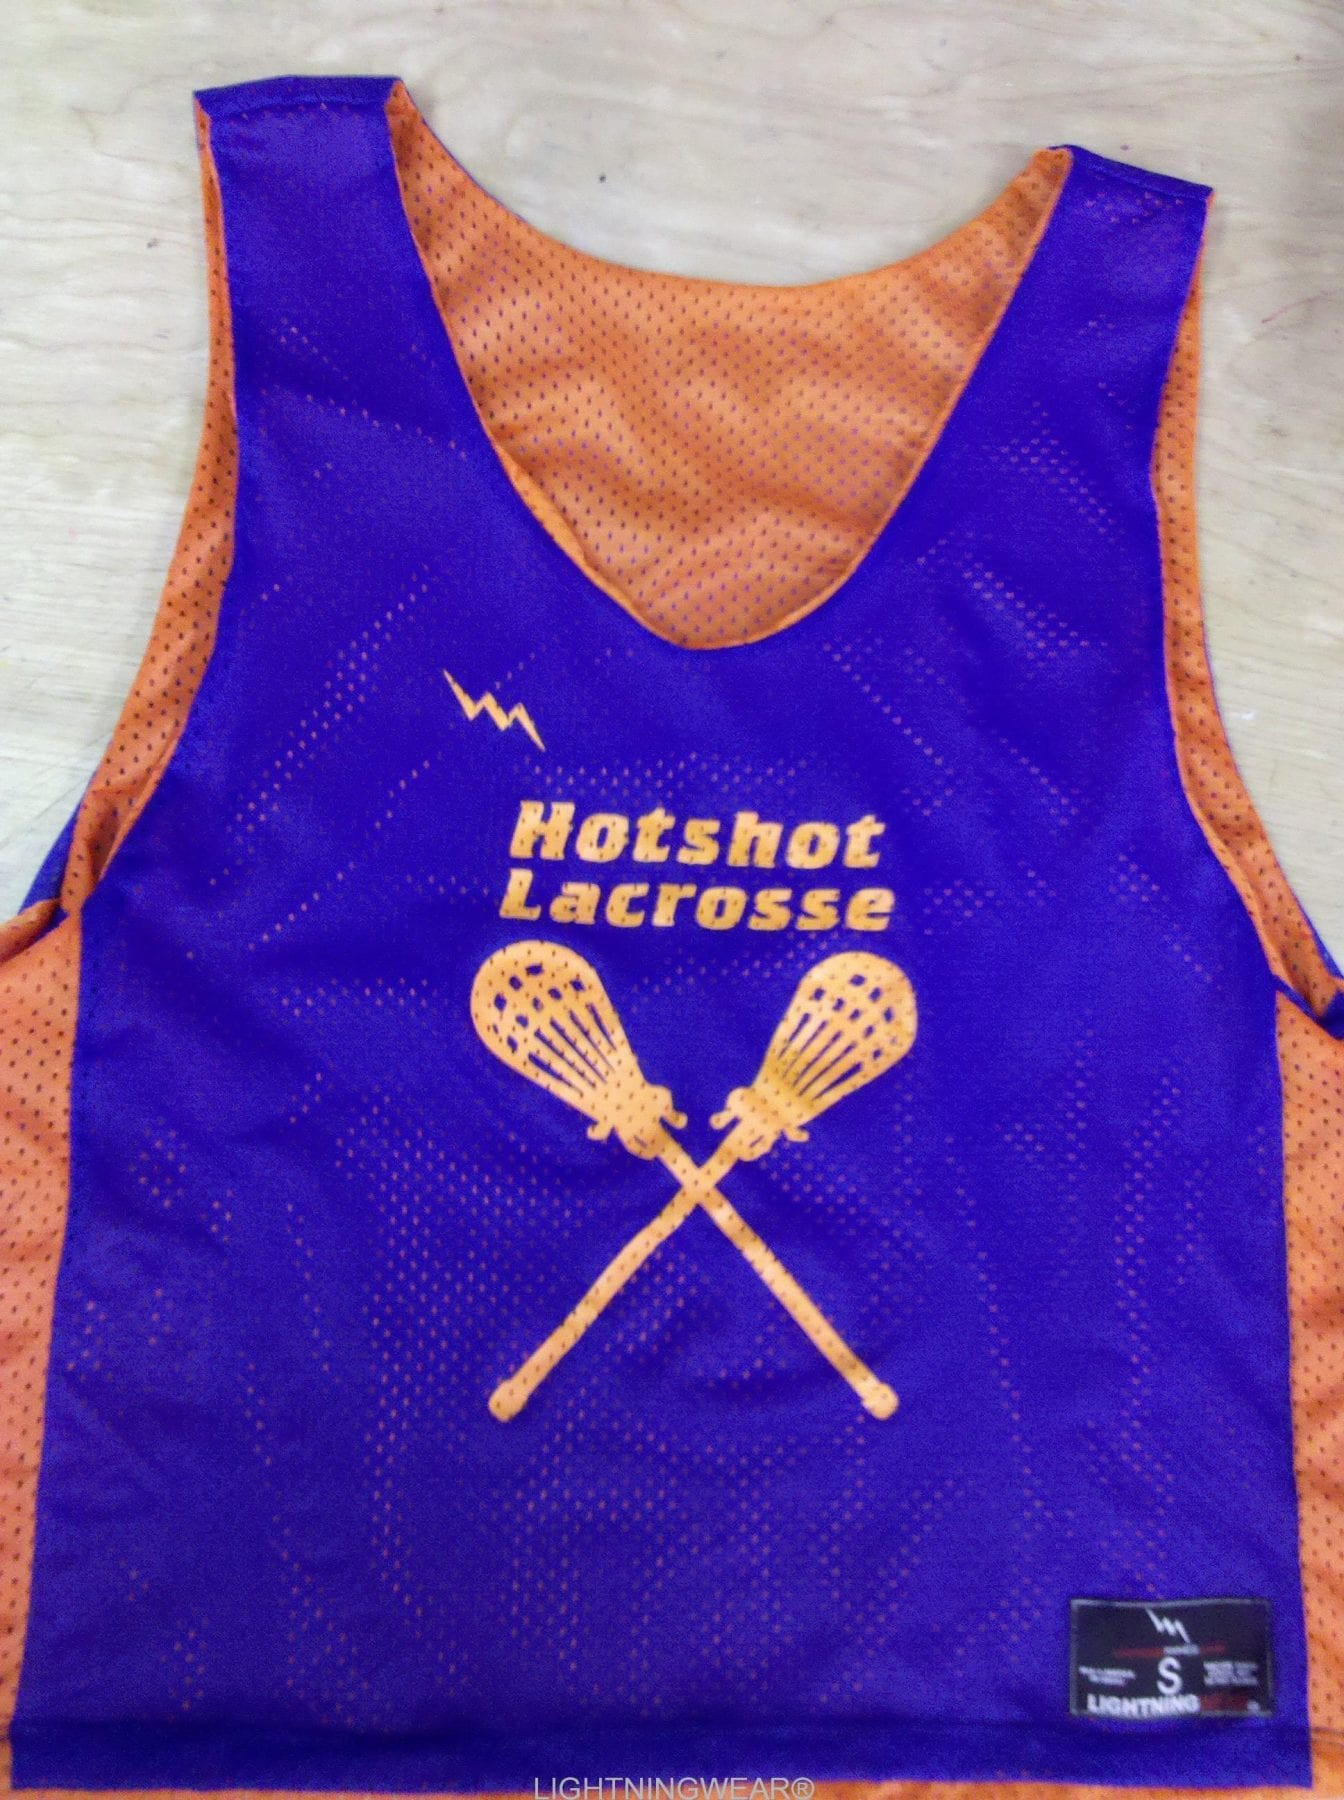 hotshot lacrosse pinnies